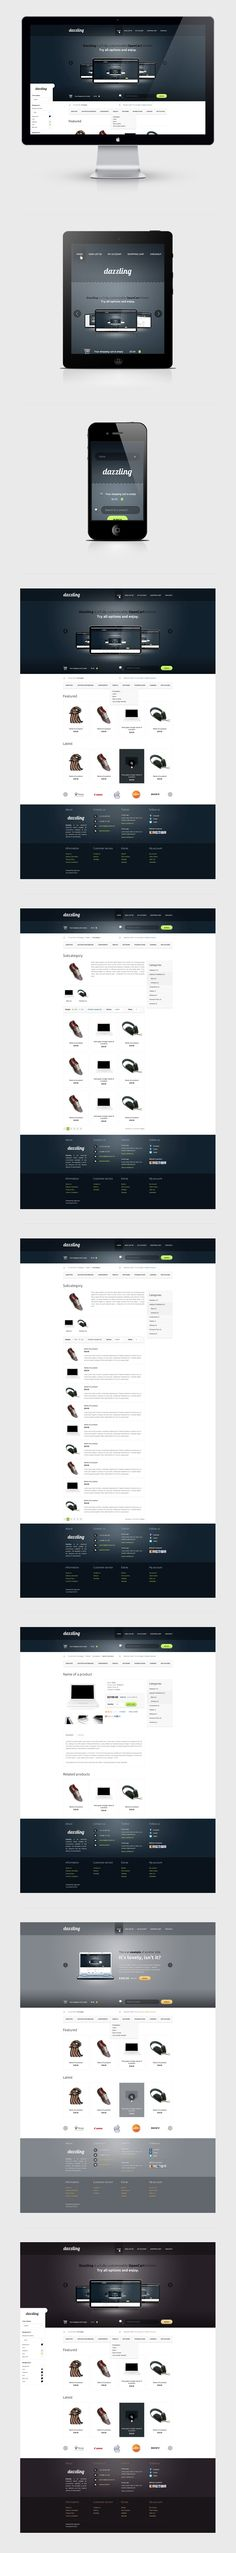 Dazzling by Paweł Świniarski, via Behance - second navigation